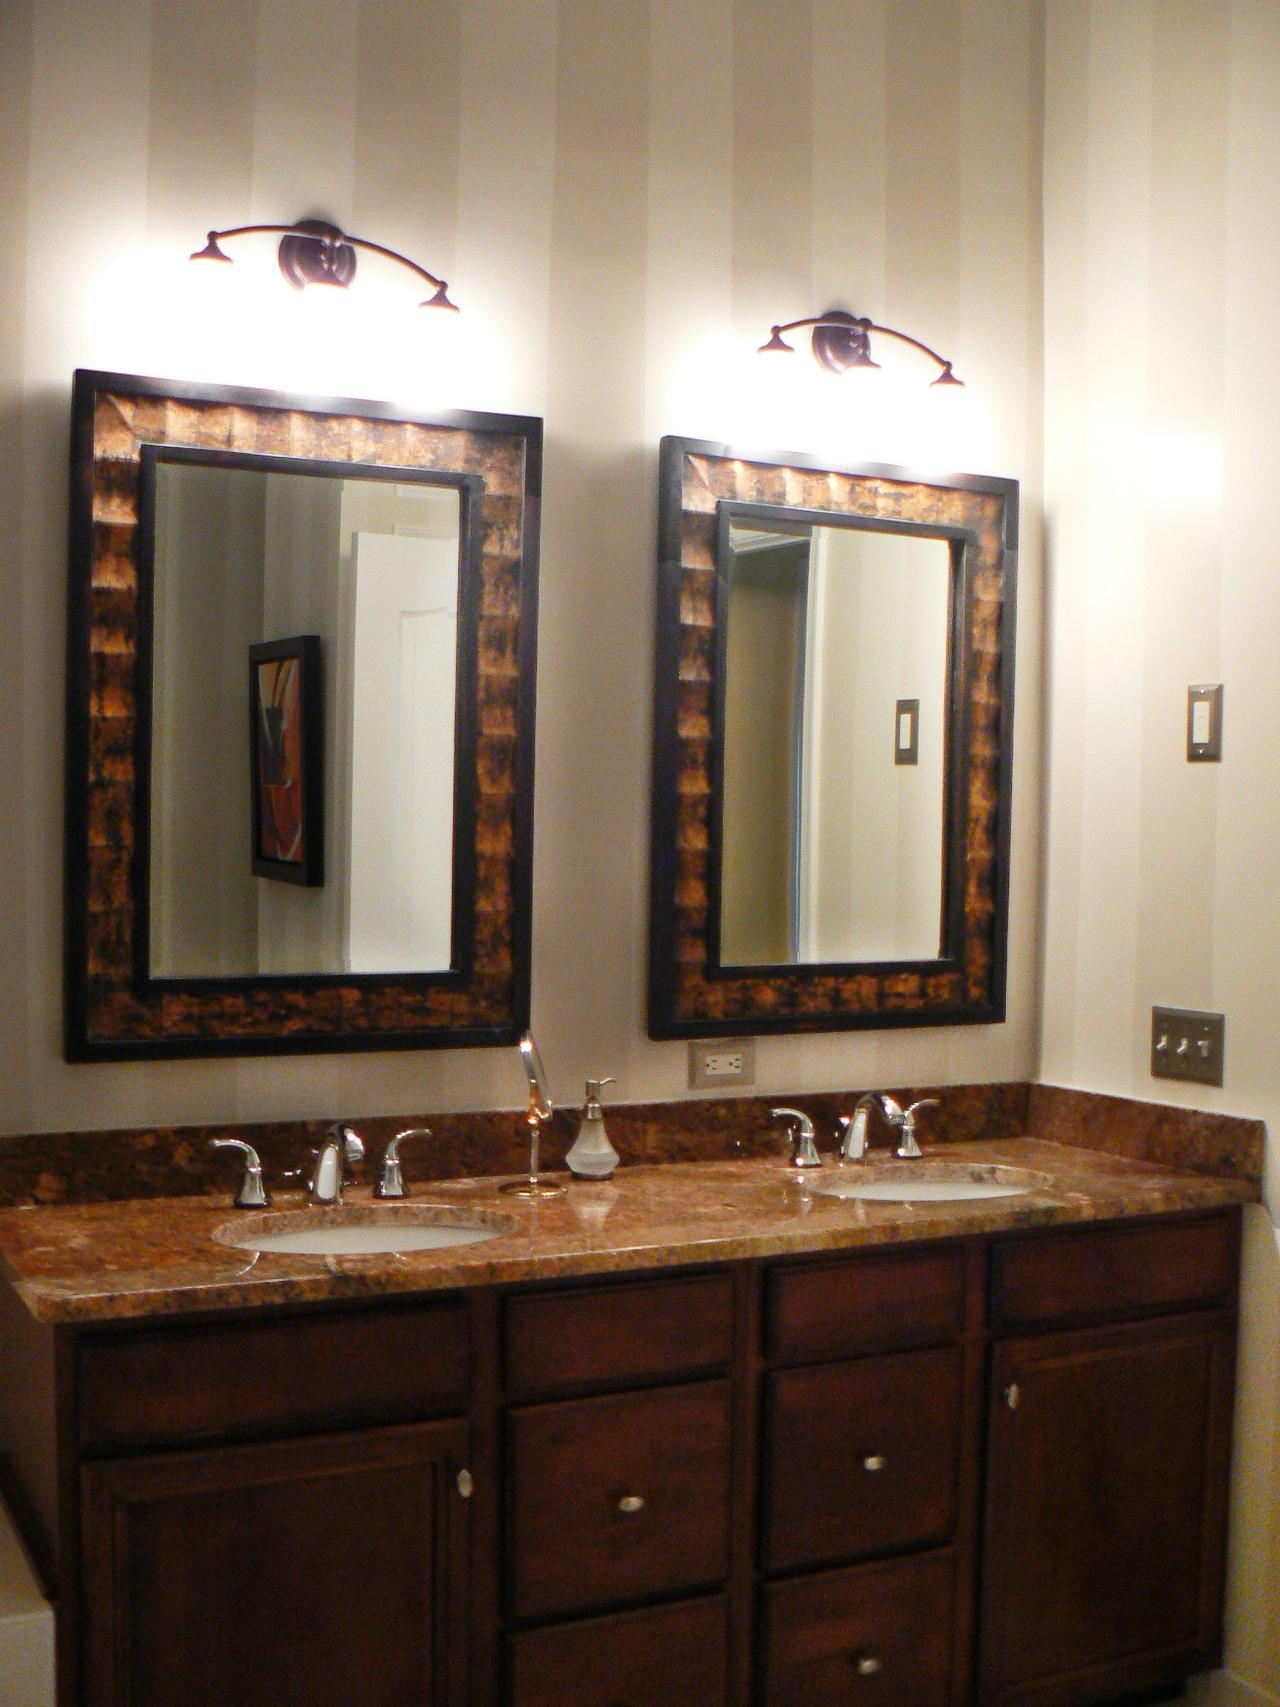 Bathroom Vanity Mirrors | Hgtv Throughout Bathroom Cabinets Mirrors (View 6 of 20)